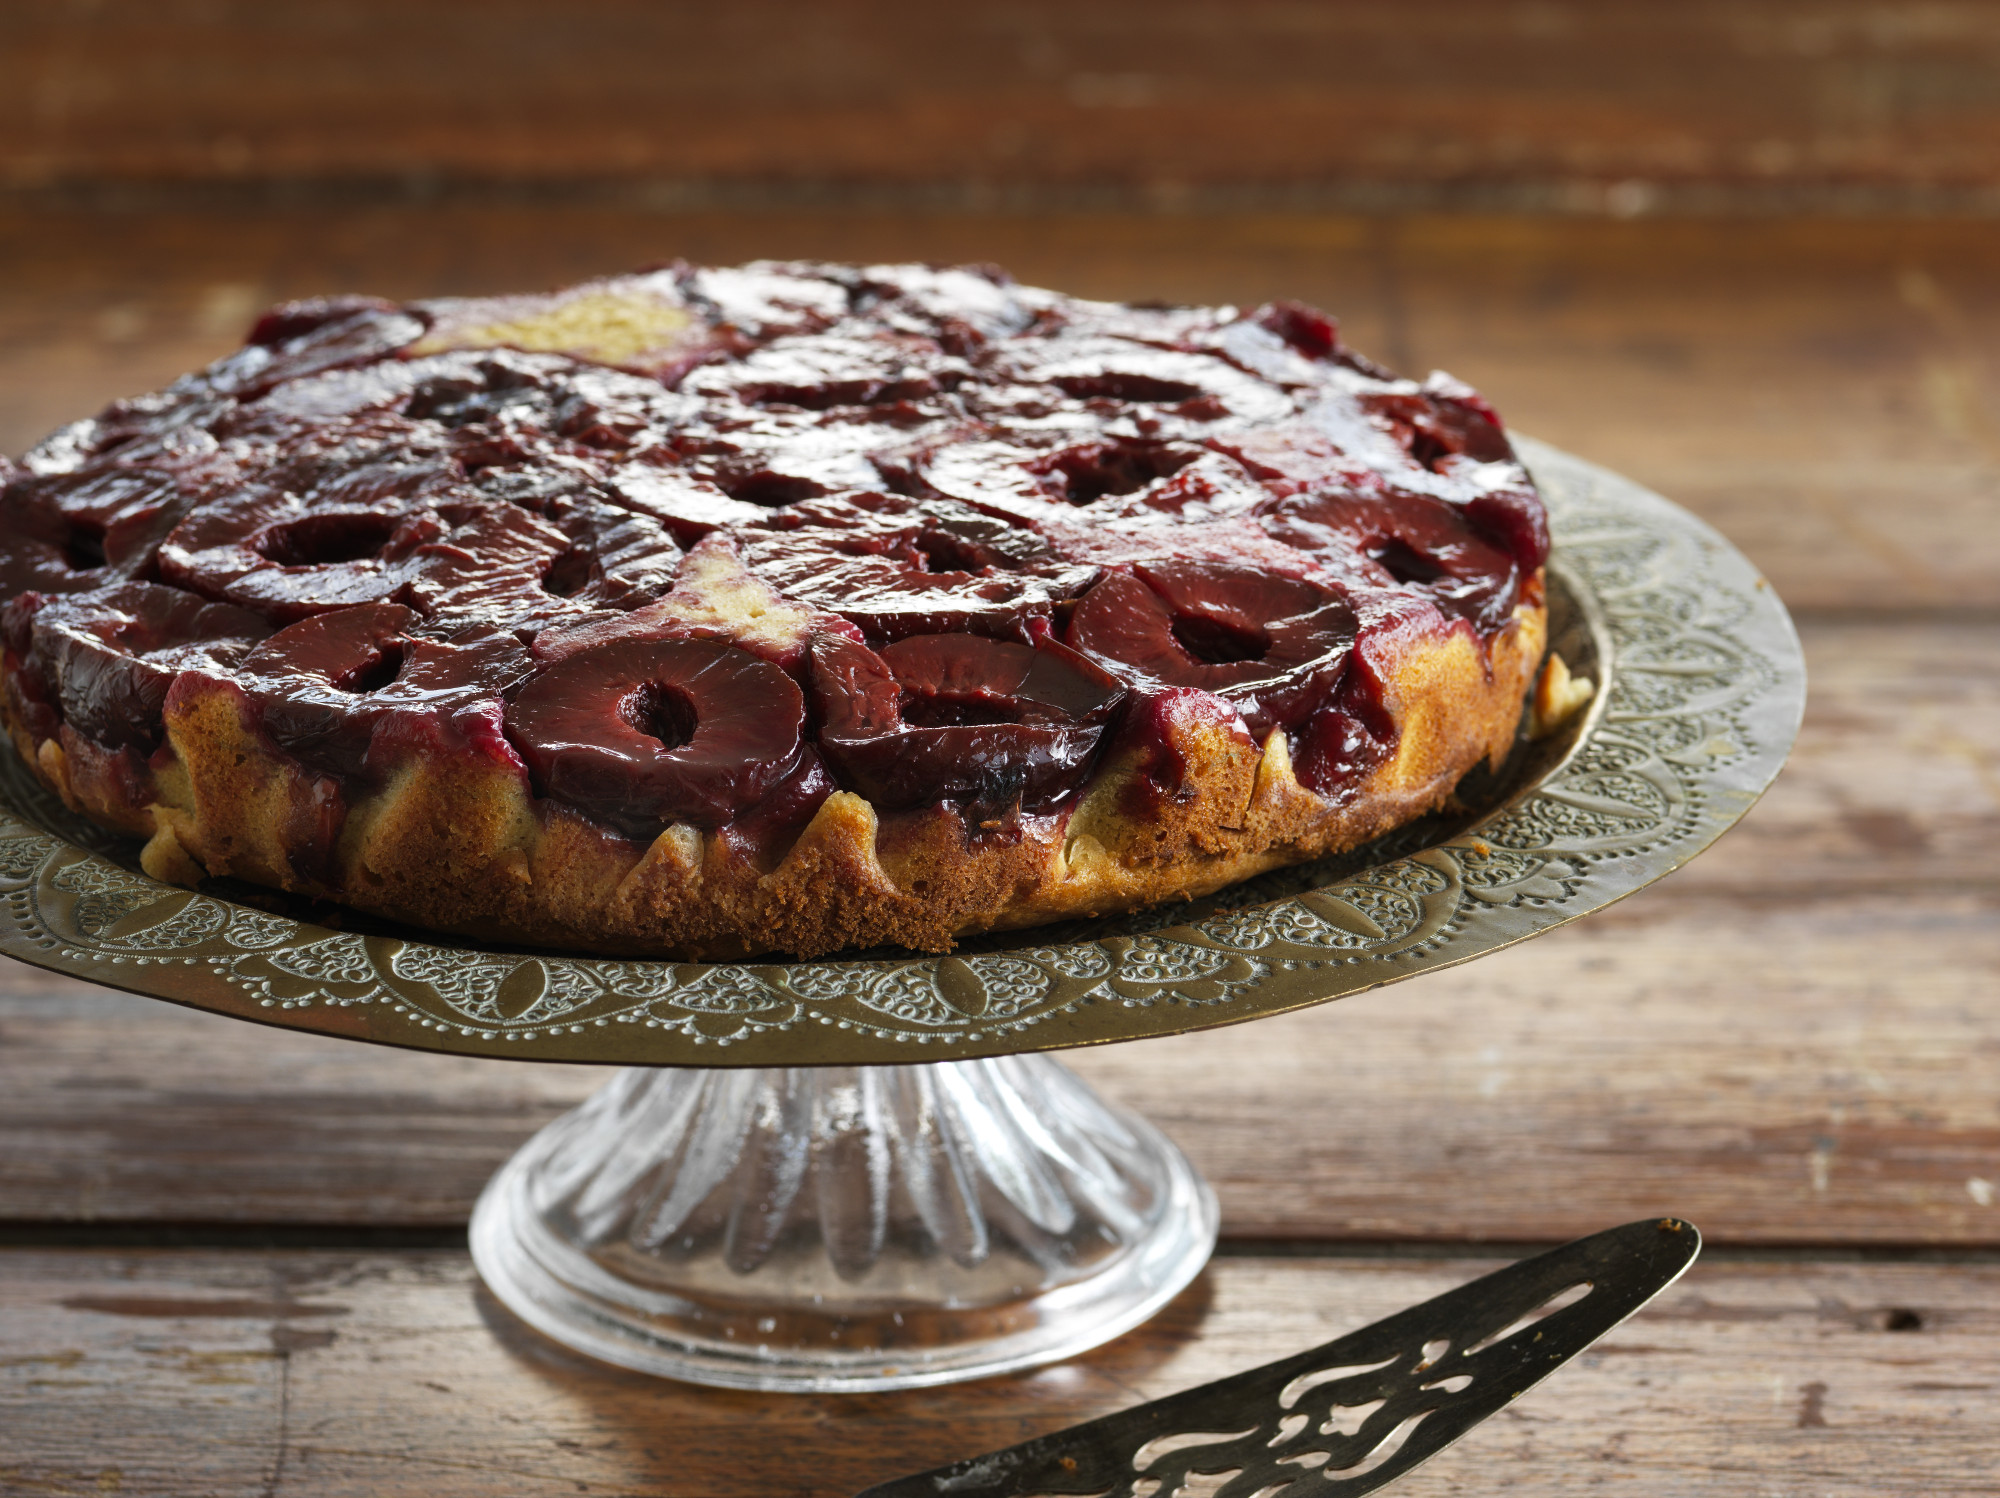 Plum and Cinnamon Upside Down Cake